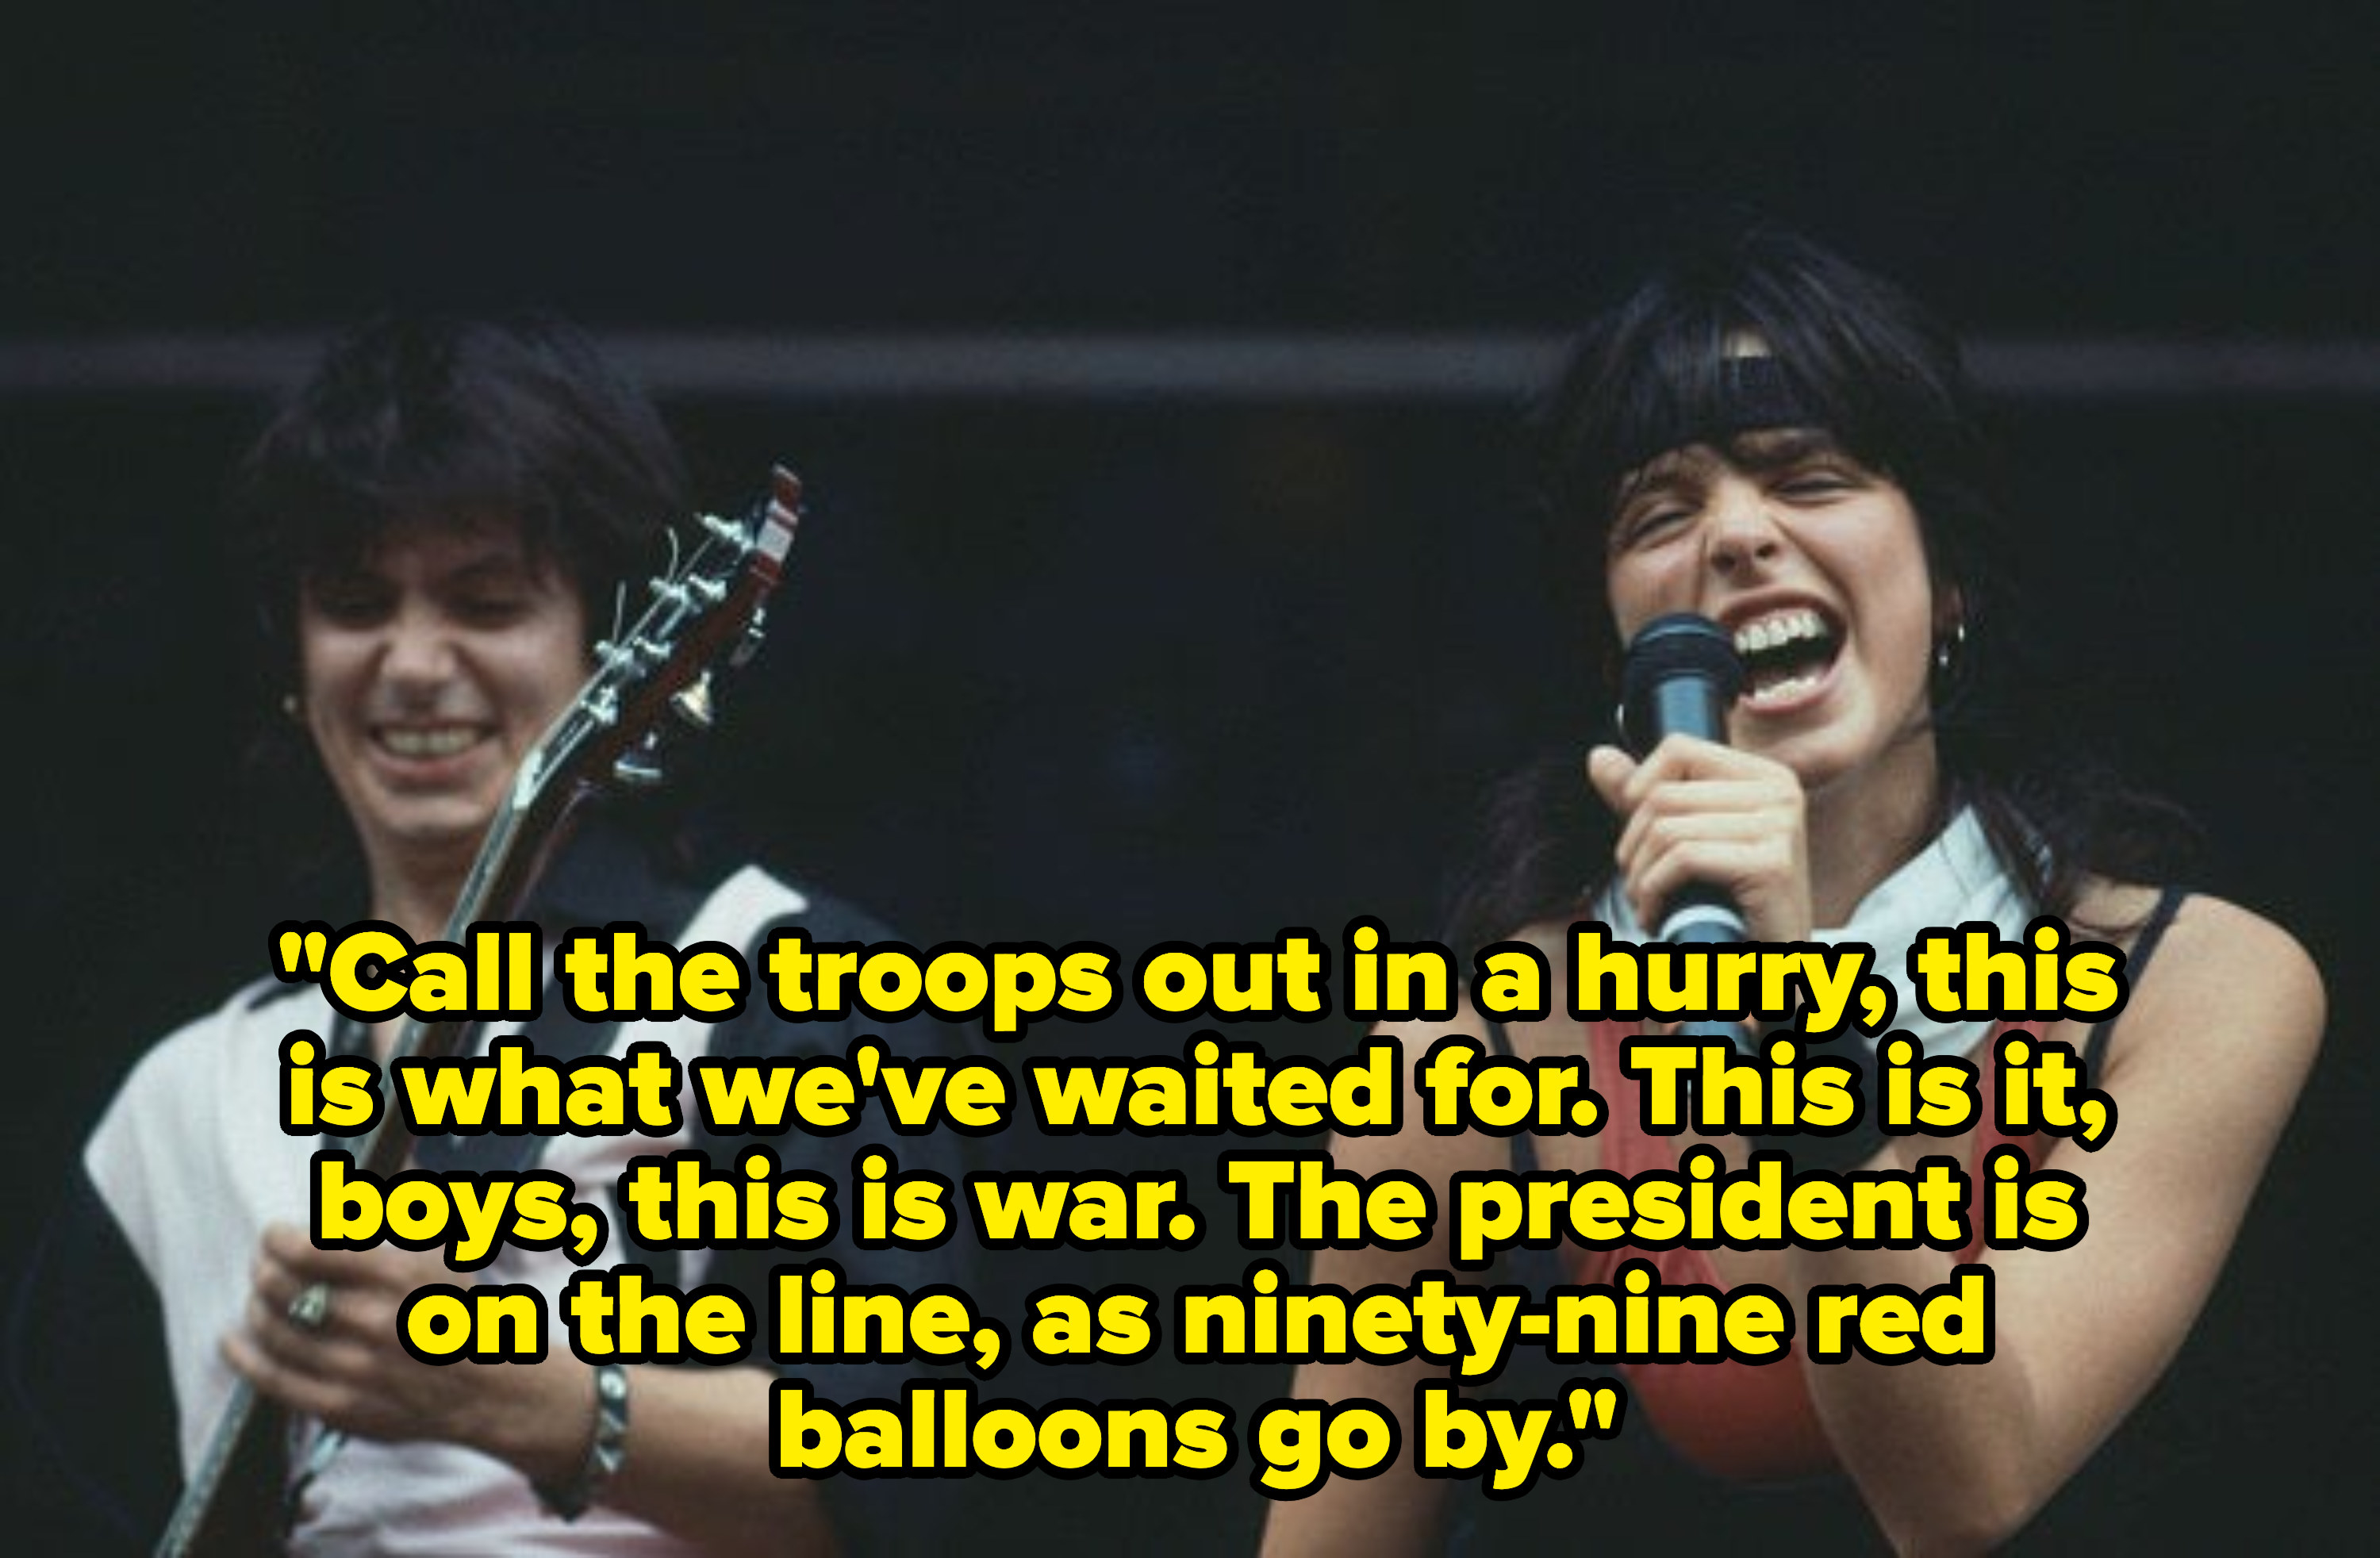 Lyrics: Call the troops out in a hurry, this is what we've waited for. This is it, boys, this is war. The president is on the line, as ninety-nine red balloons go by